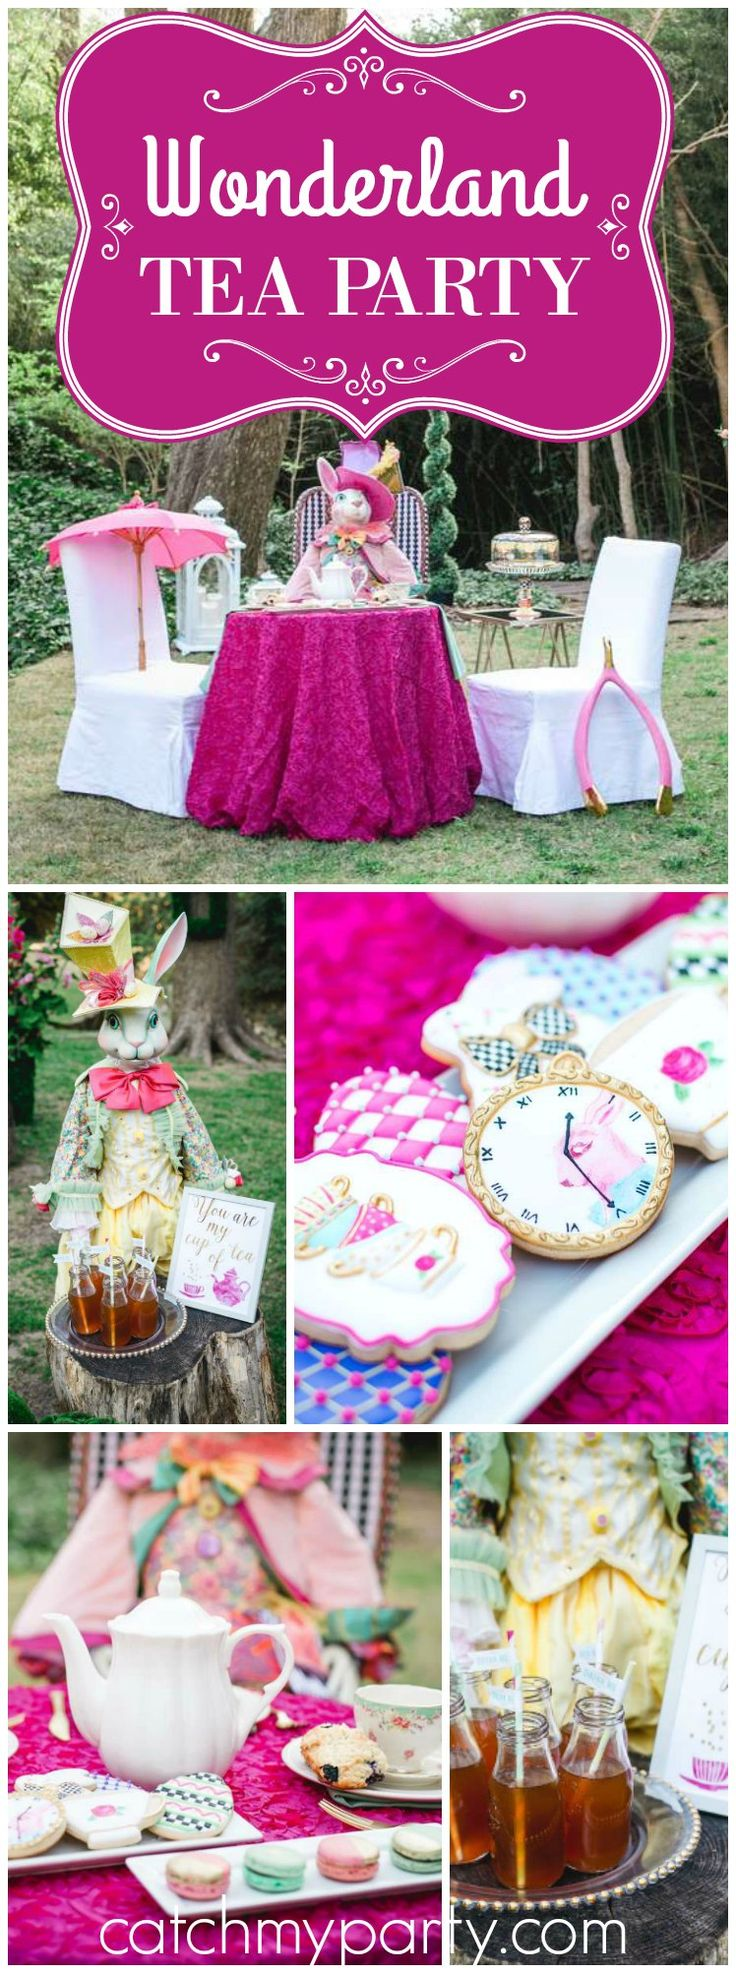 You have to see this Alice in Wonderland Easter tea party! See more party ideas at CatchMyParty.com!